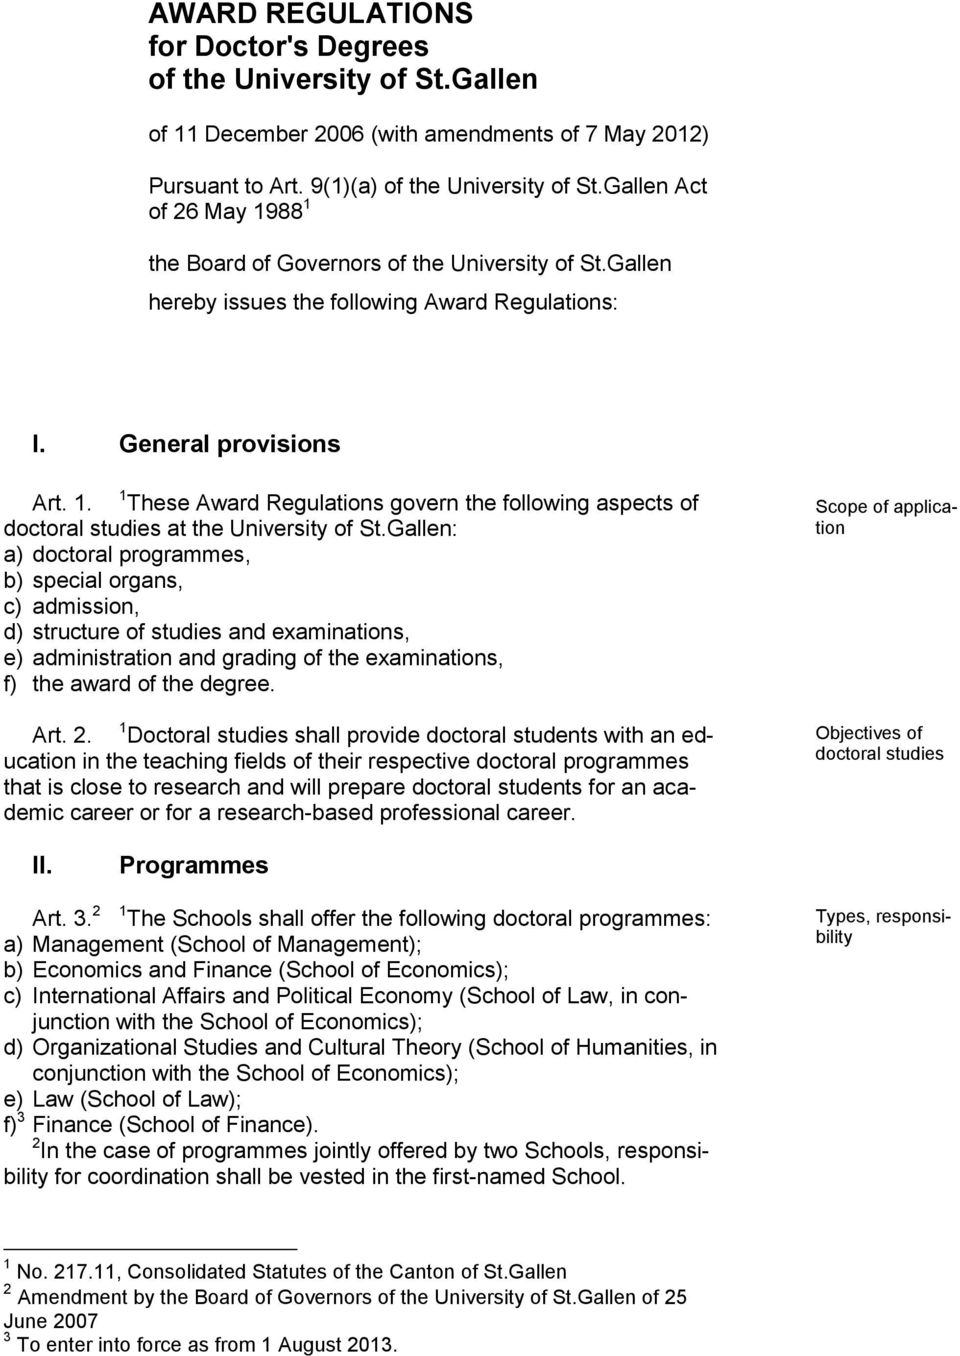 Gallen: a) doctoral programmes, b) special organs, c) admission, d) structure of studies and examinations, e) administration and grading of the examinations, f) the award of the degree. Art. 2.